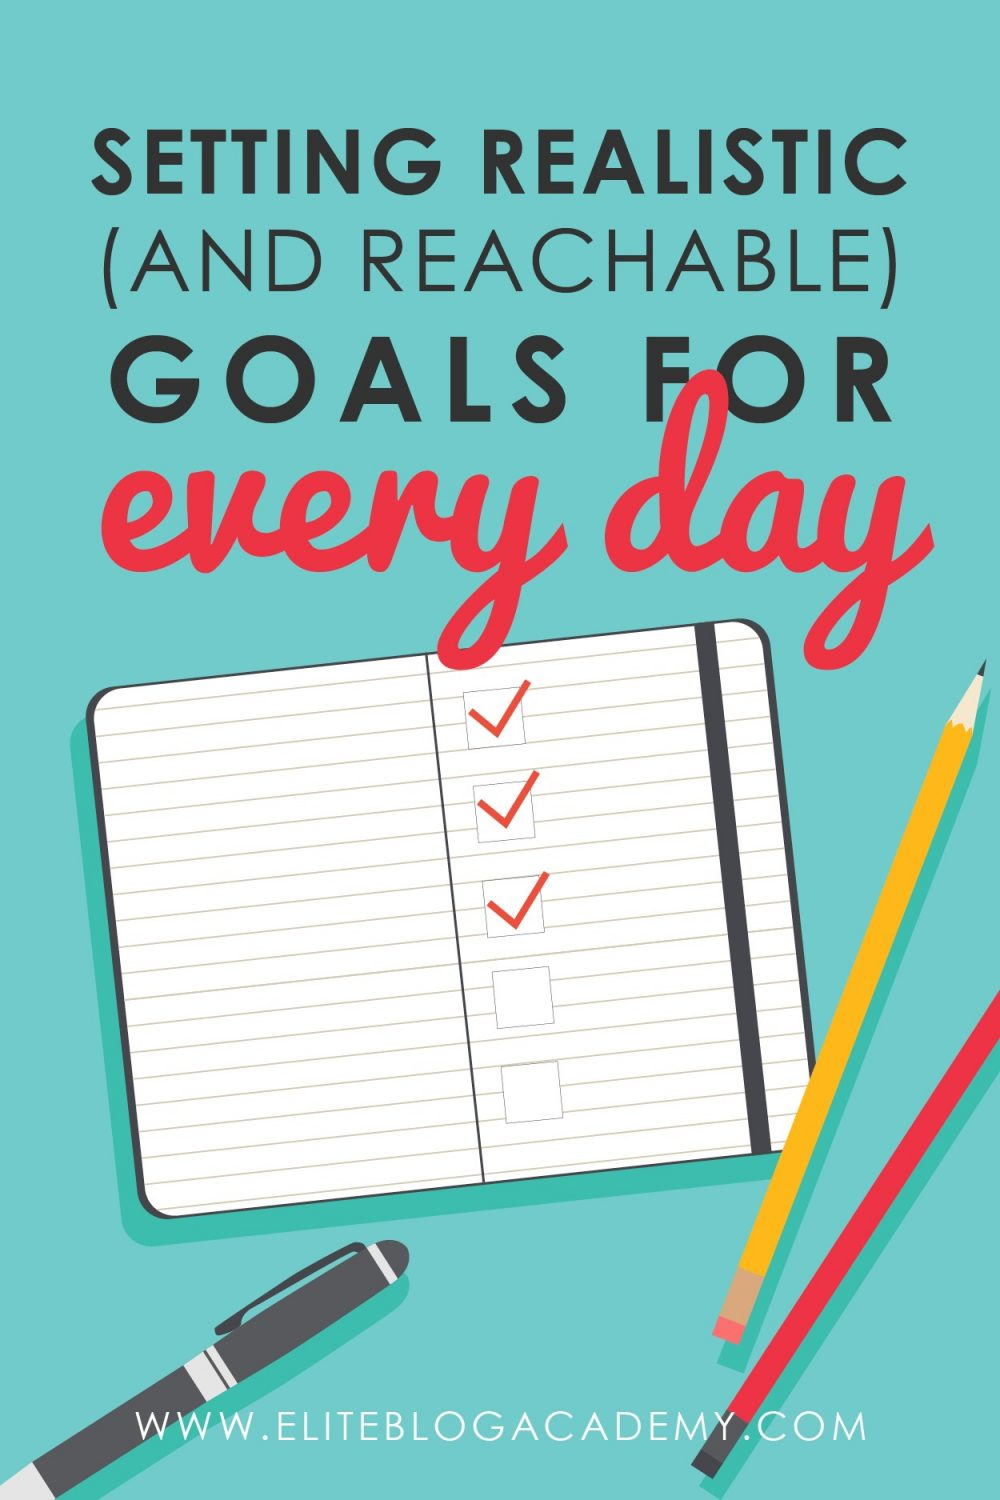 #eliteblogacademy #goalsetting #thinkbig #bloggingtips #goalcrushing